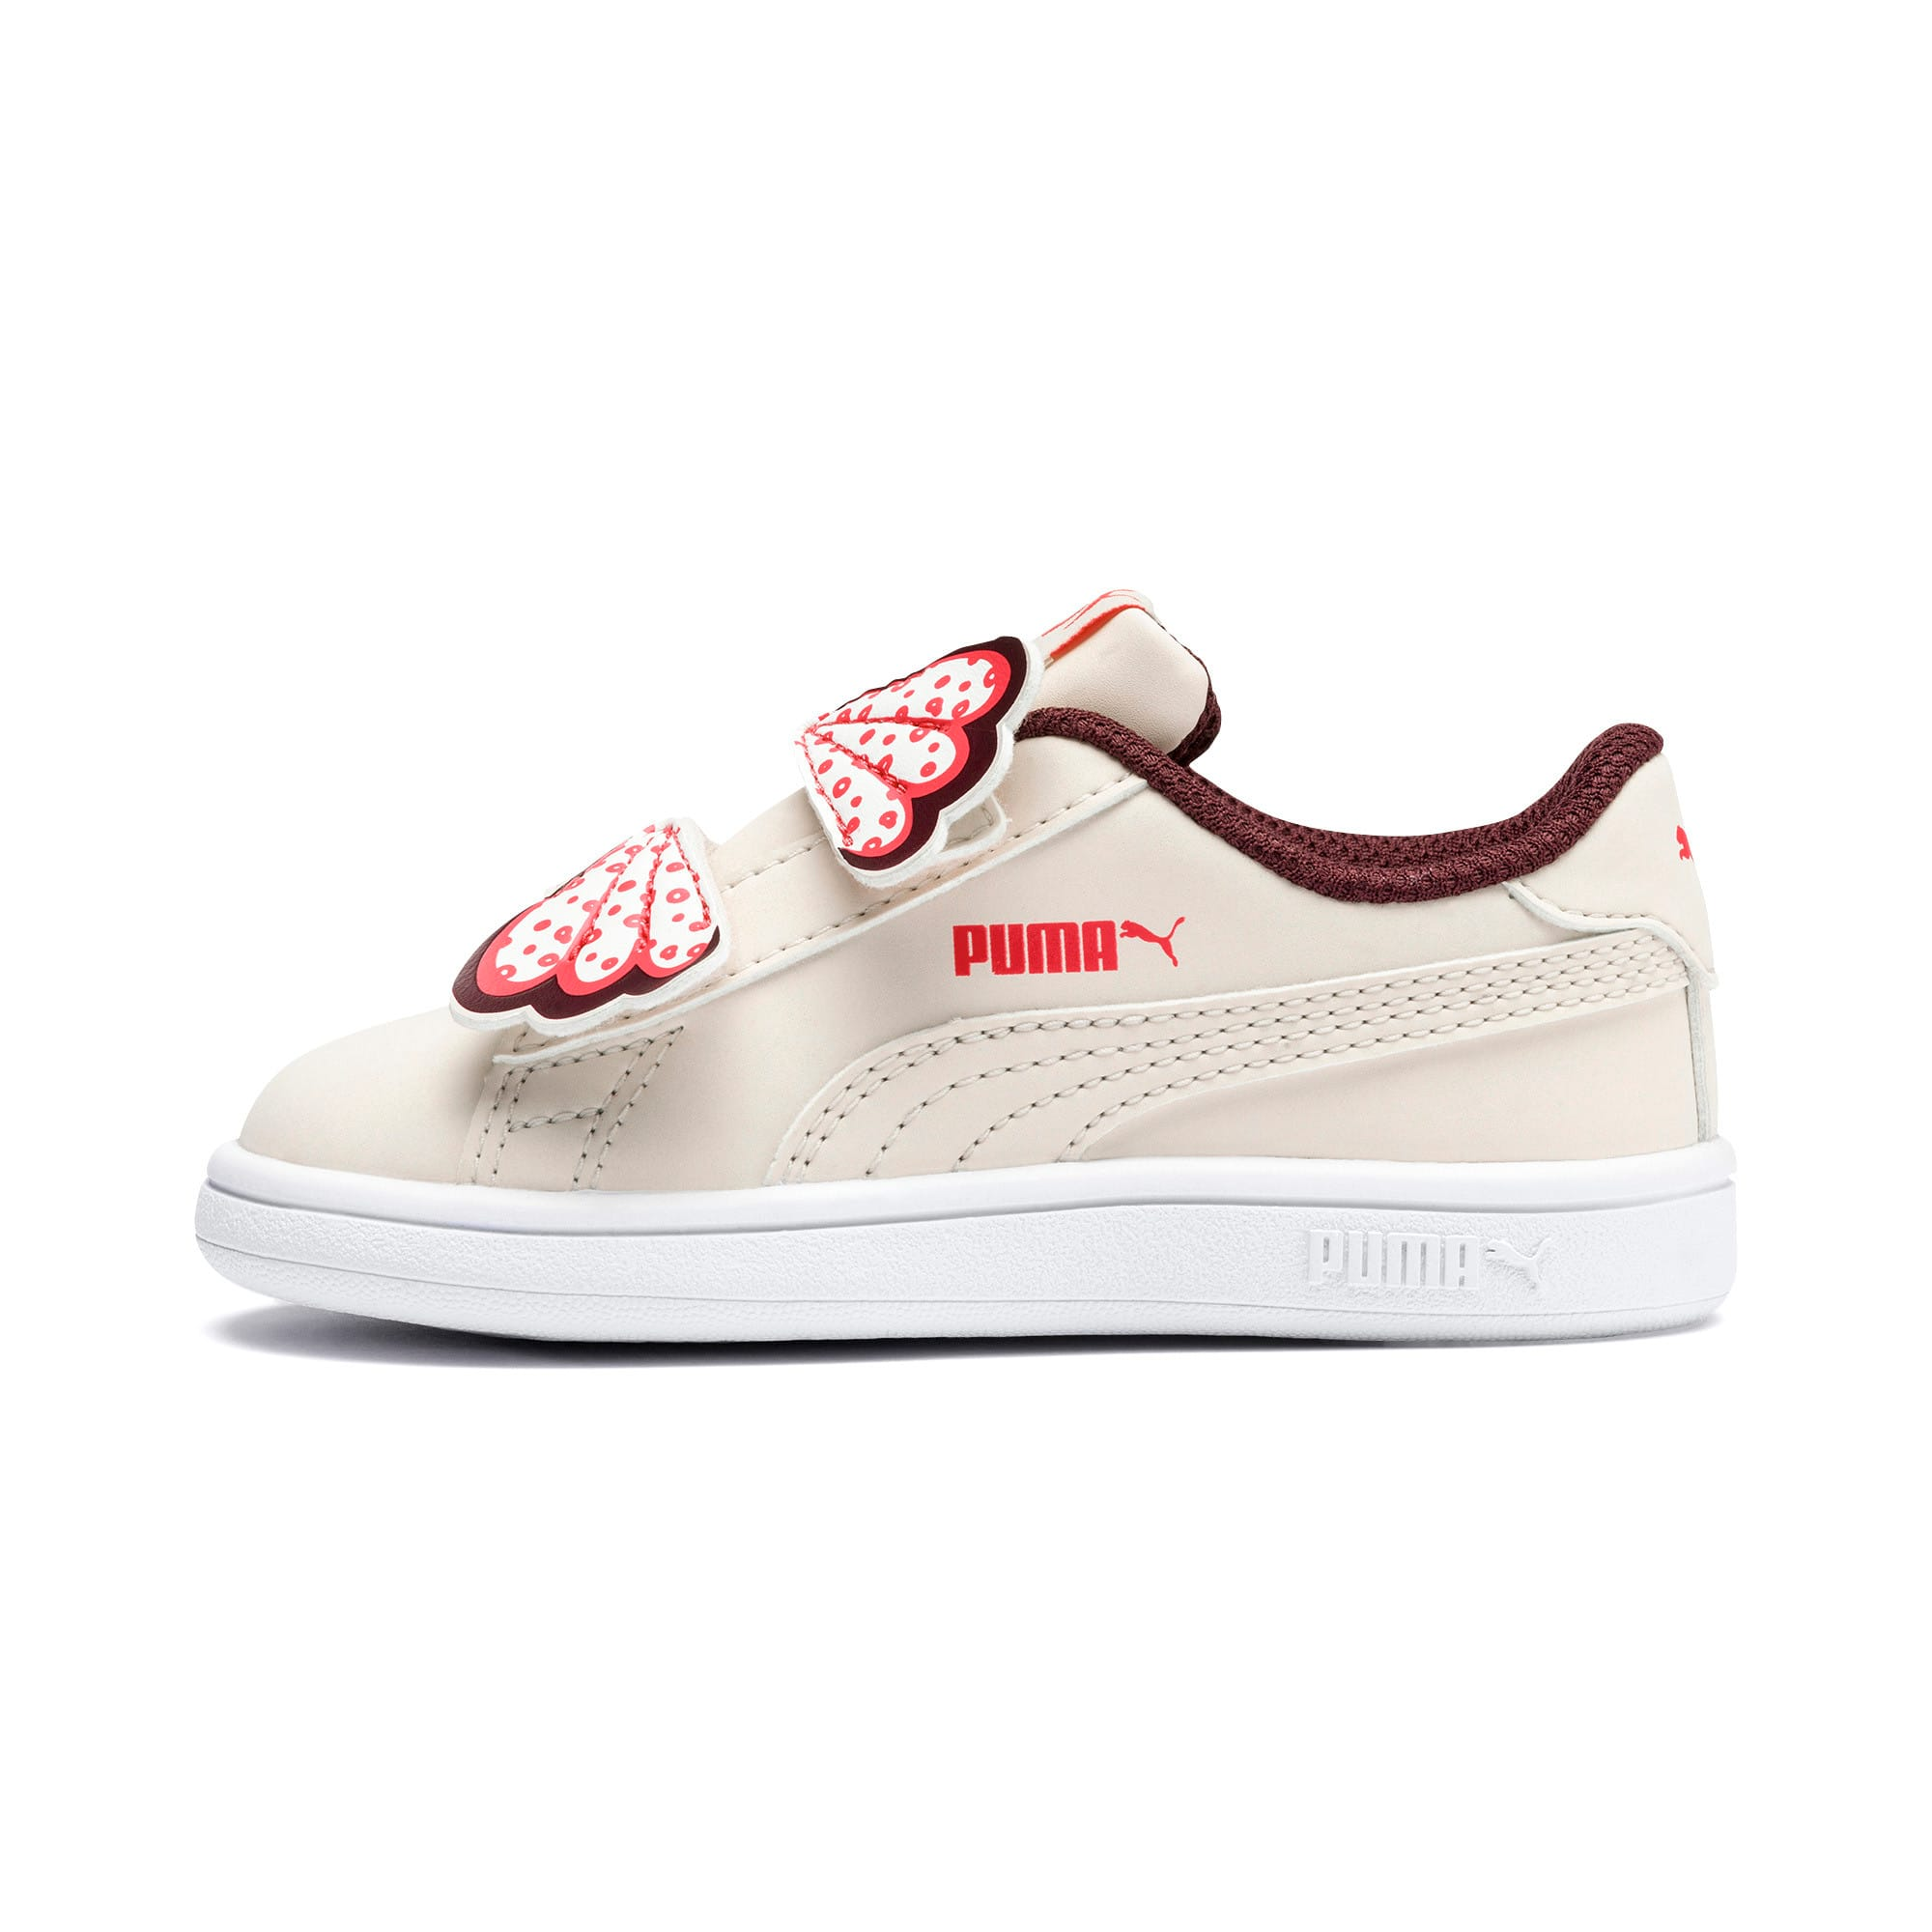 Thumbnail 1 of PUMA Smash v2 Butterfly Baby Girls' Trainers, Pastel Parchment-Vineyard, medium